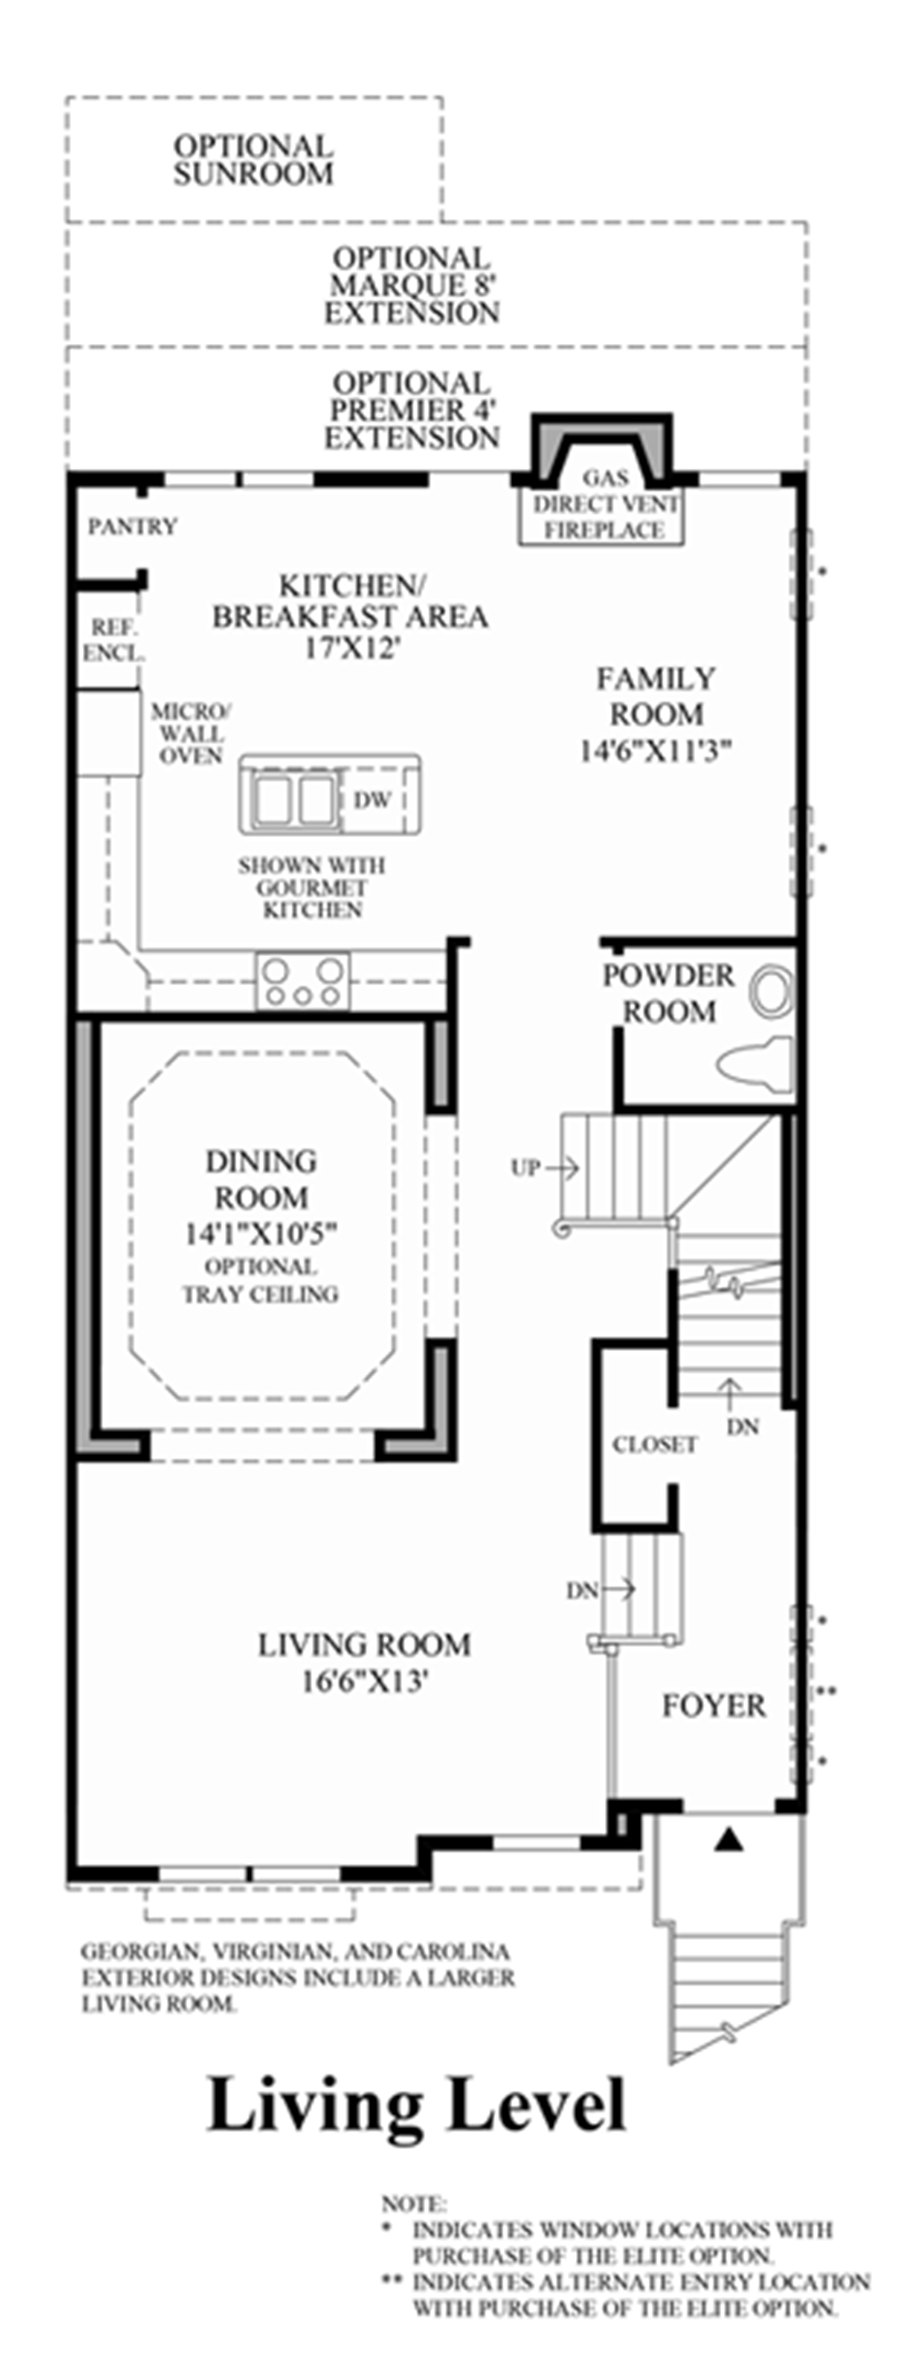 Living Level Floor Plan